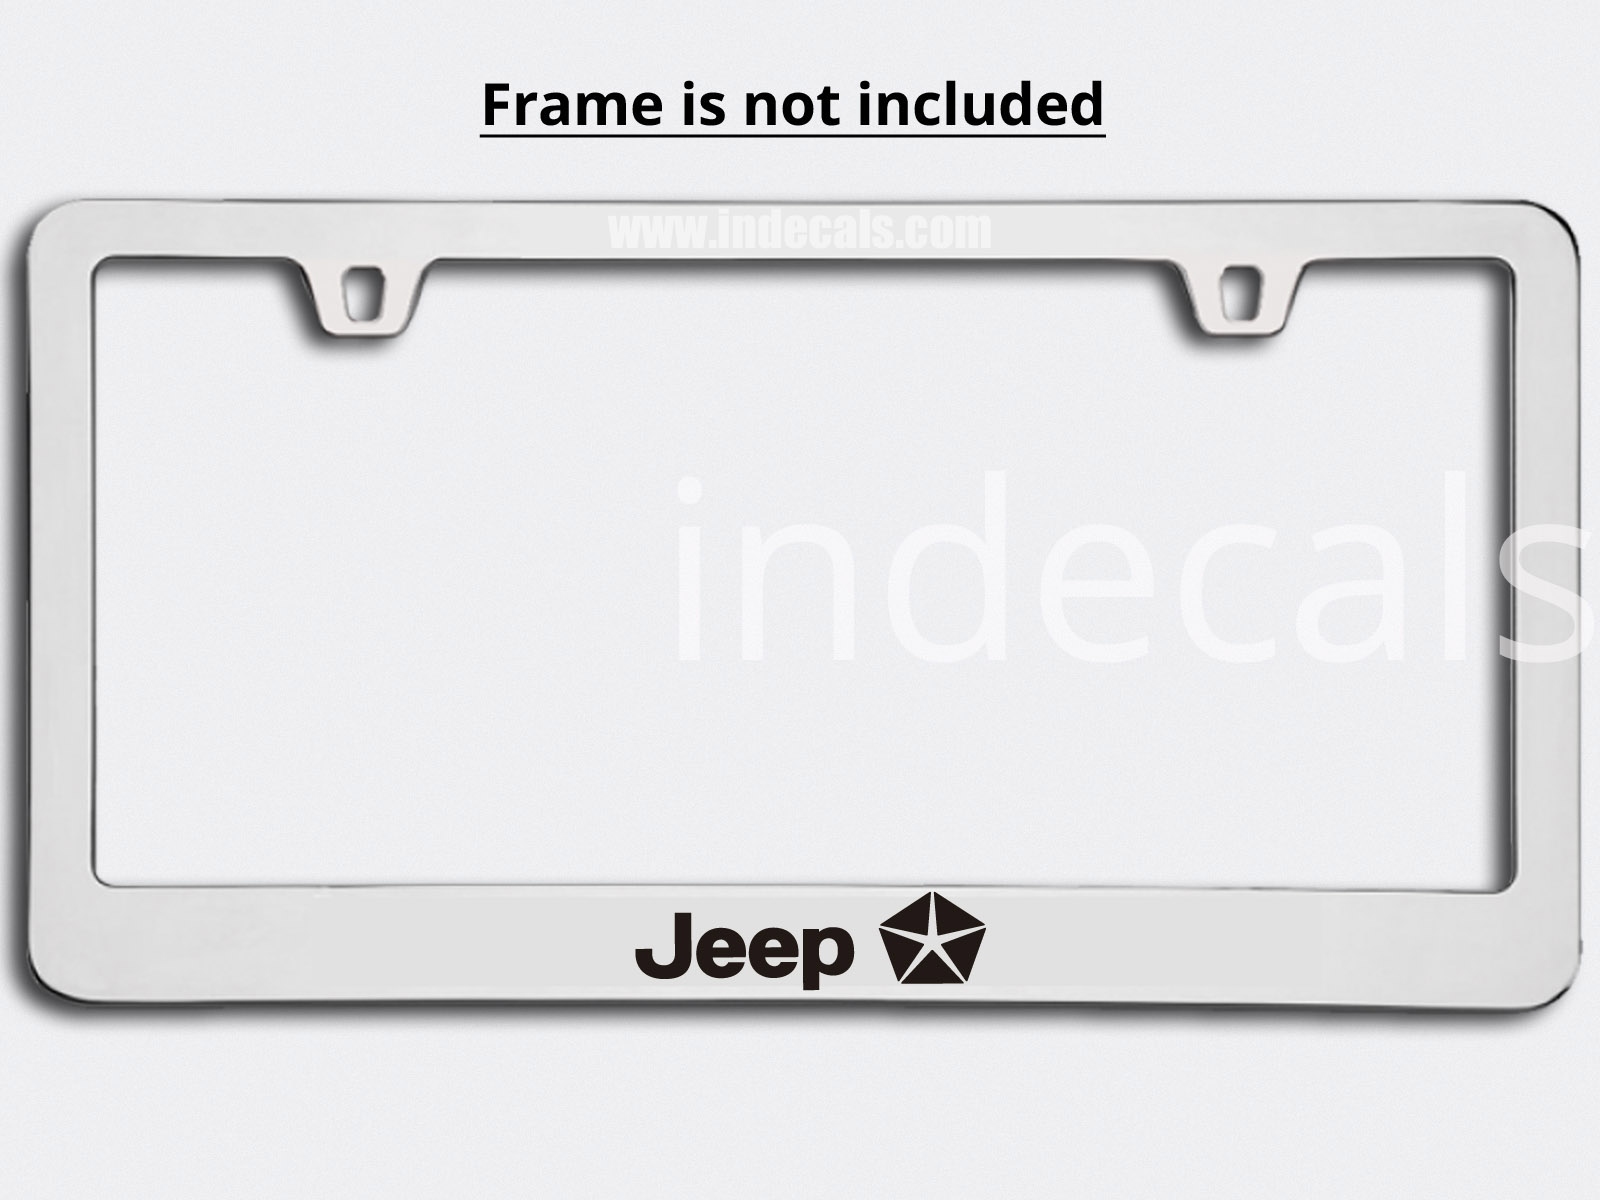 3 x Jeep Stickers for Plate Frame - Black